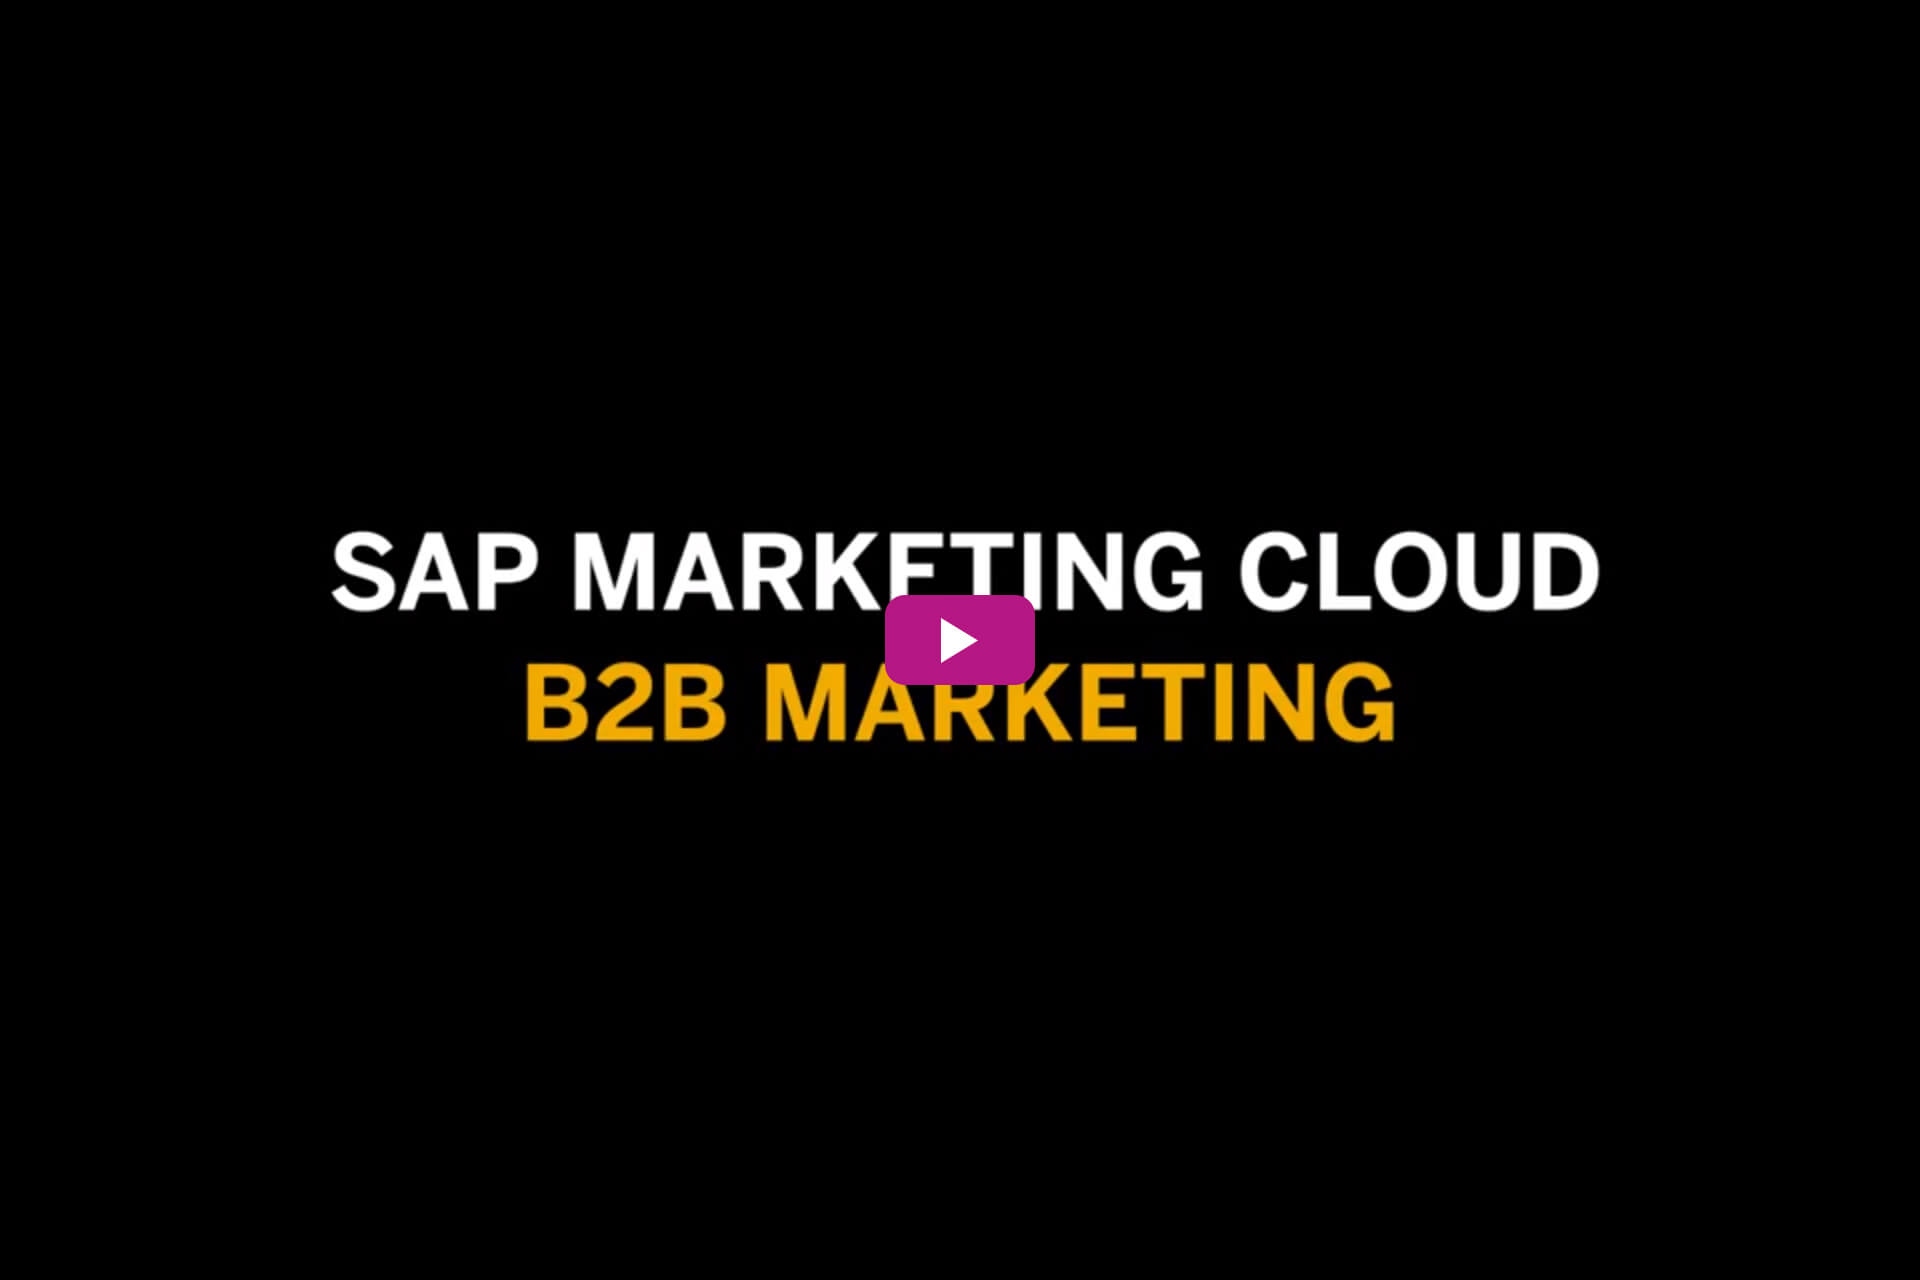 Vorschaubild für das Video SAP Marketing Cloud B2B Marketing